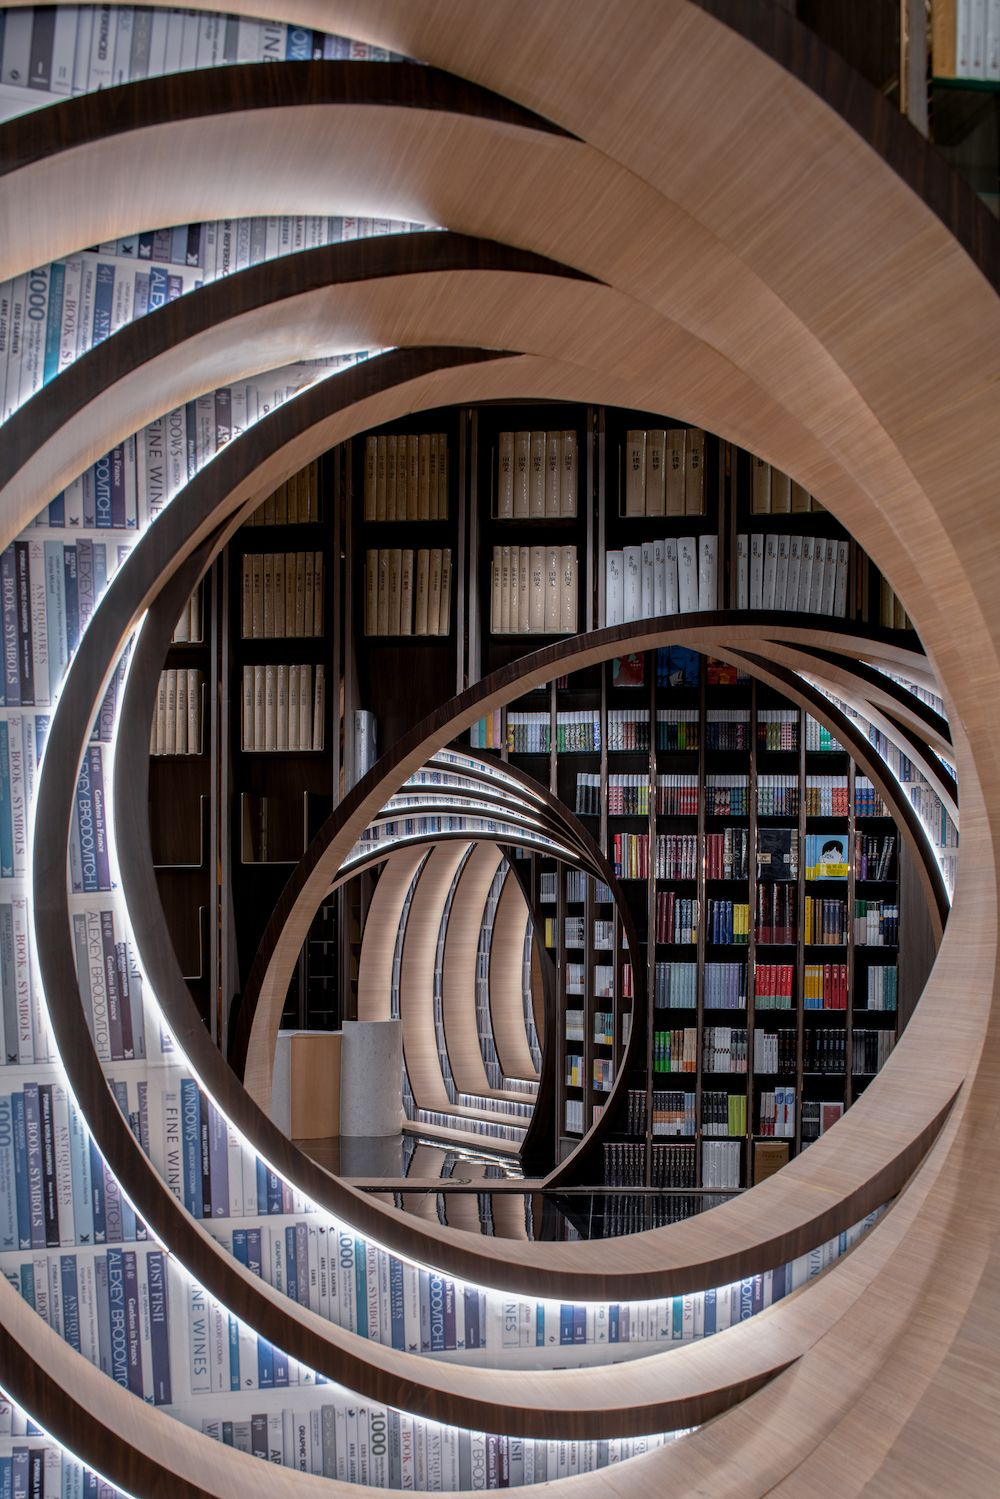 Step inside this surrealist library that offers an escape from reality